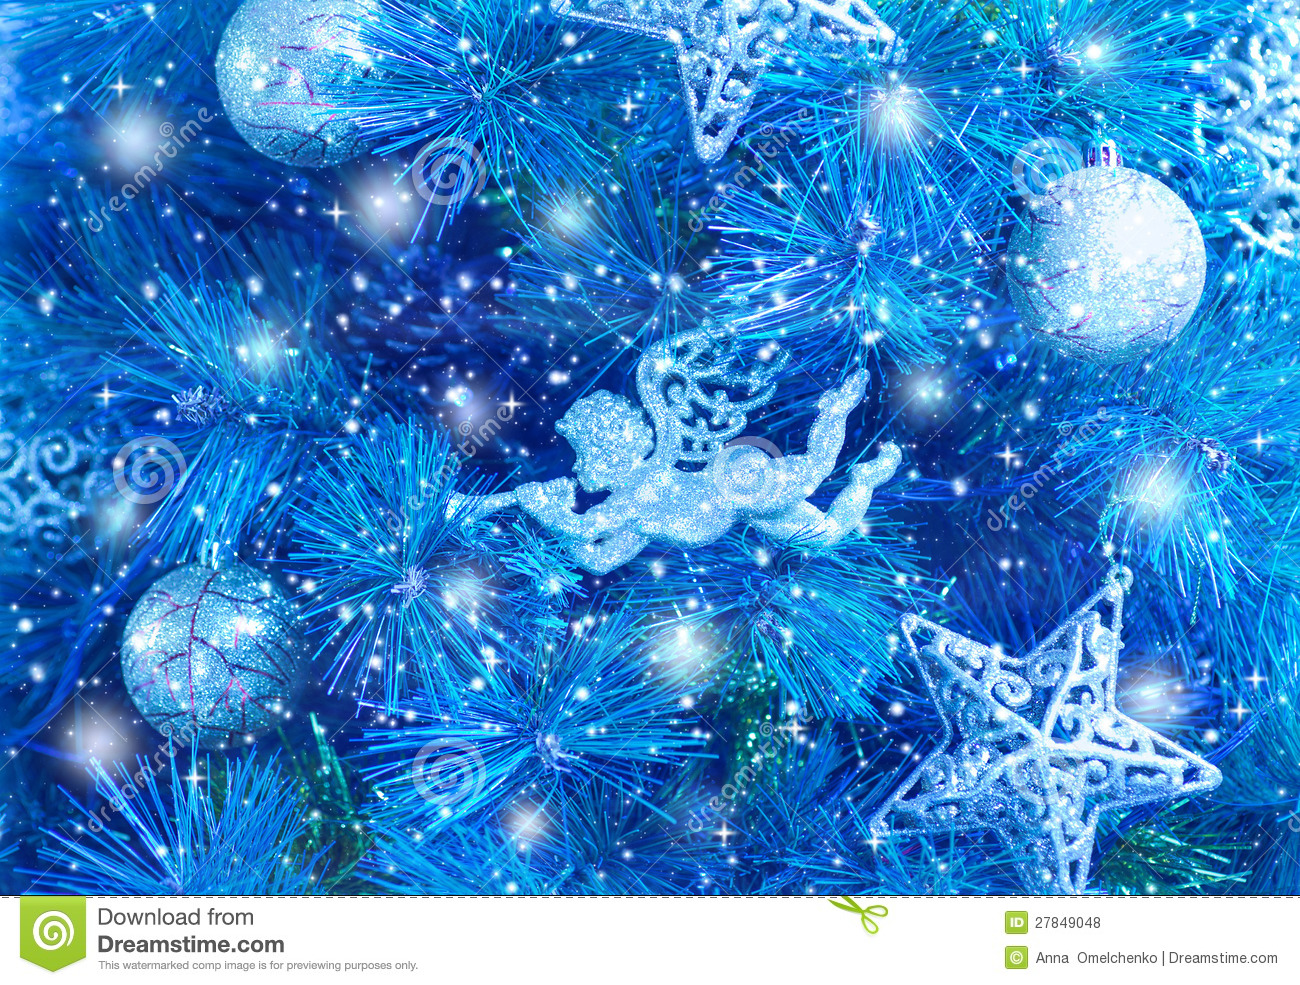 blu christmas tree wallpaper backgrounds - photo #31